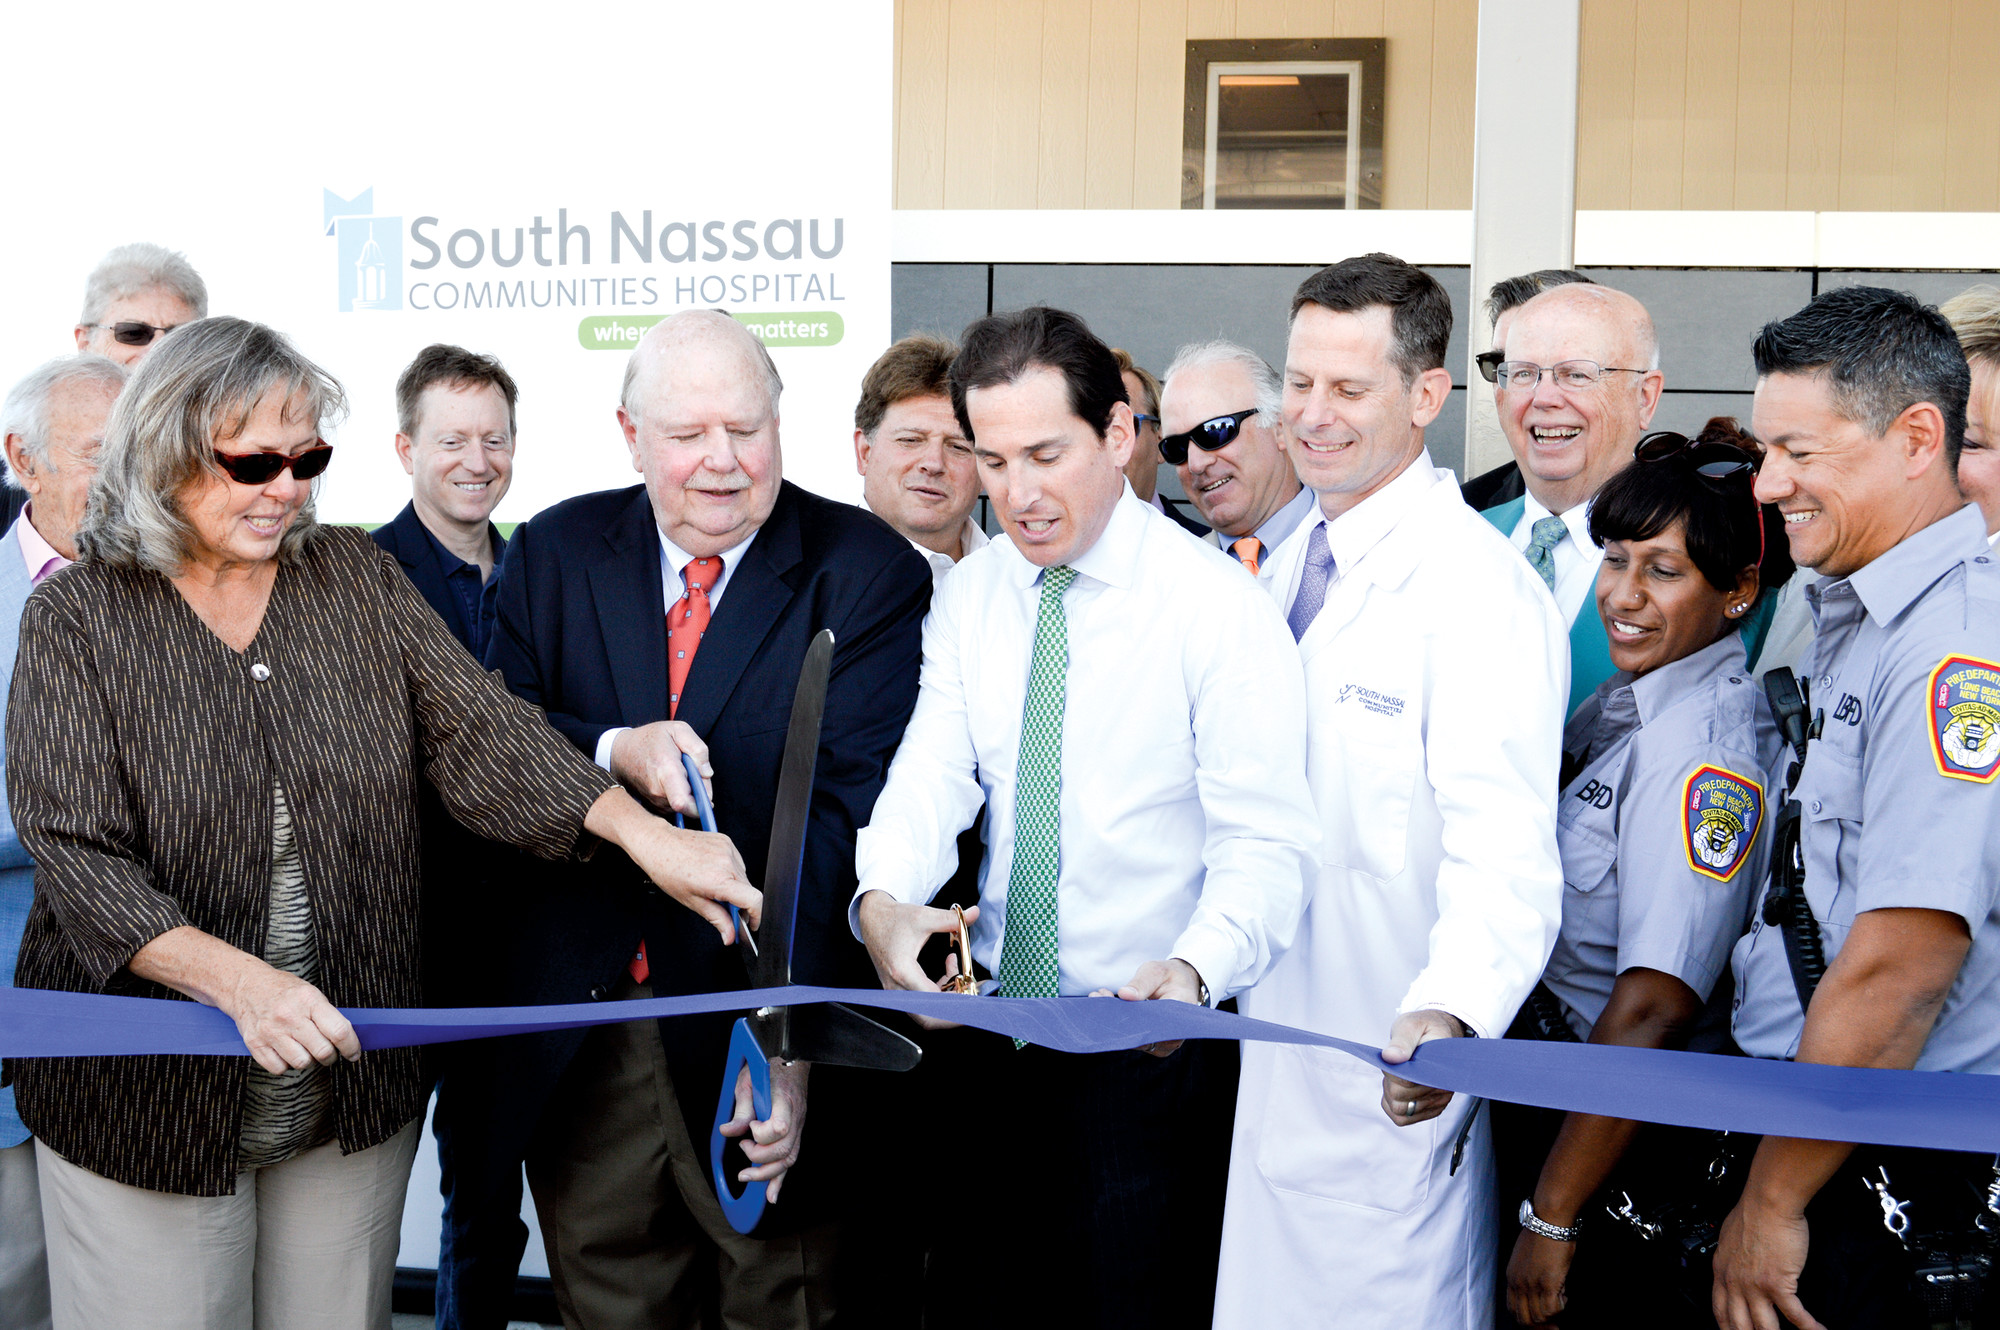 Local officials gathered for a ribbon-cutting ceremony on Monday to mark the opening of South Nassau Communities Hospital's new free-standing emergency department in Long Beach, the first emergency facility to operate on the barrier island since Hurricane Sandy.